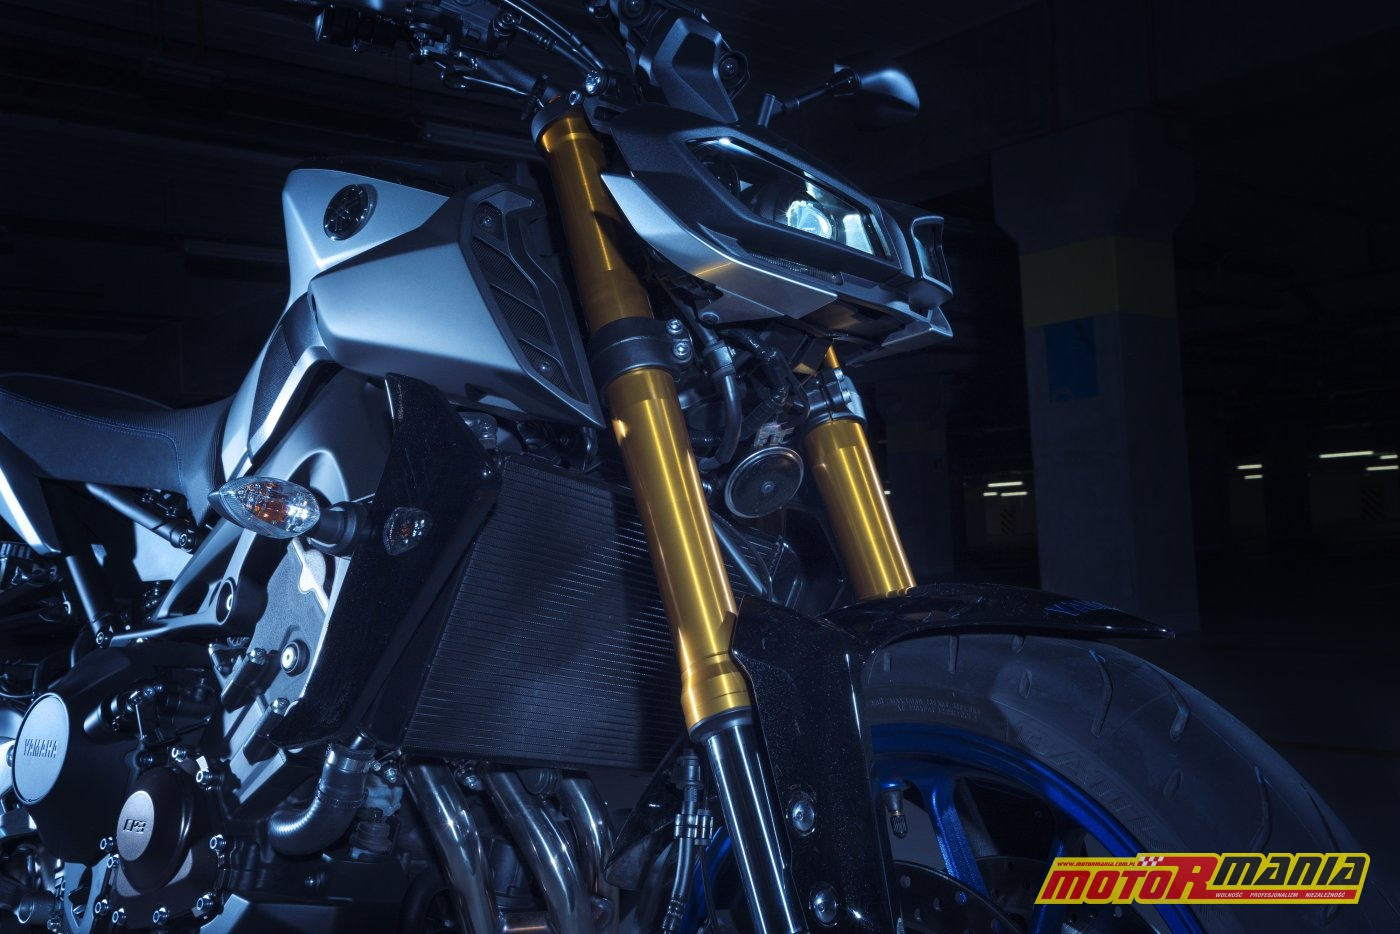 Yamaha MT-09 SP 2018 (21)